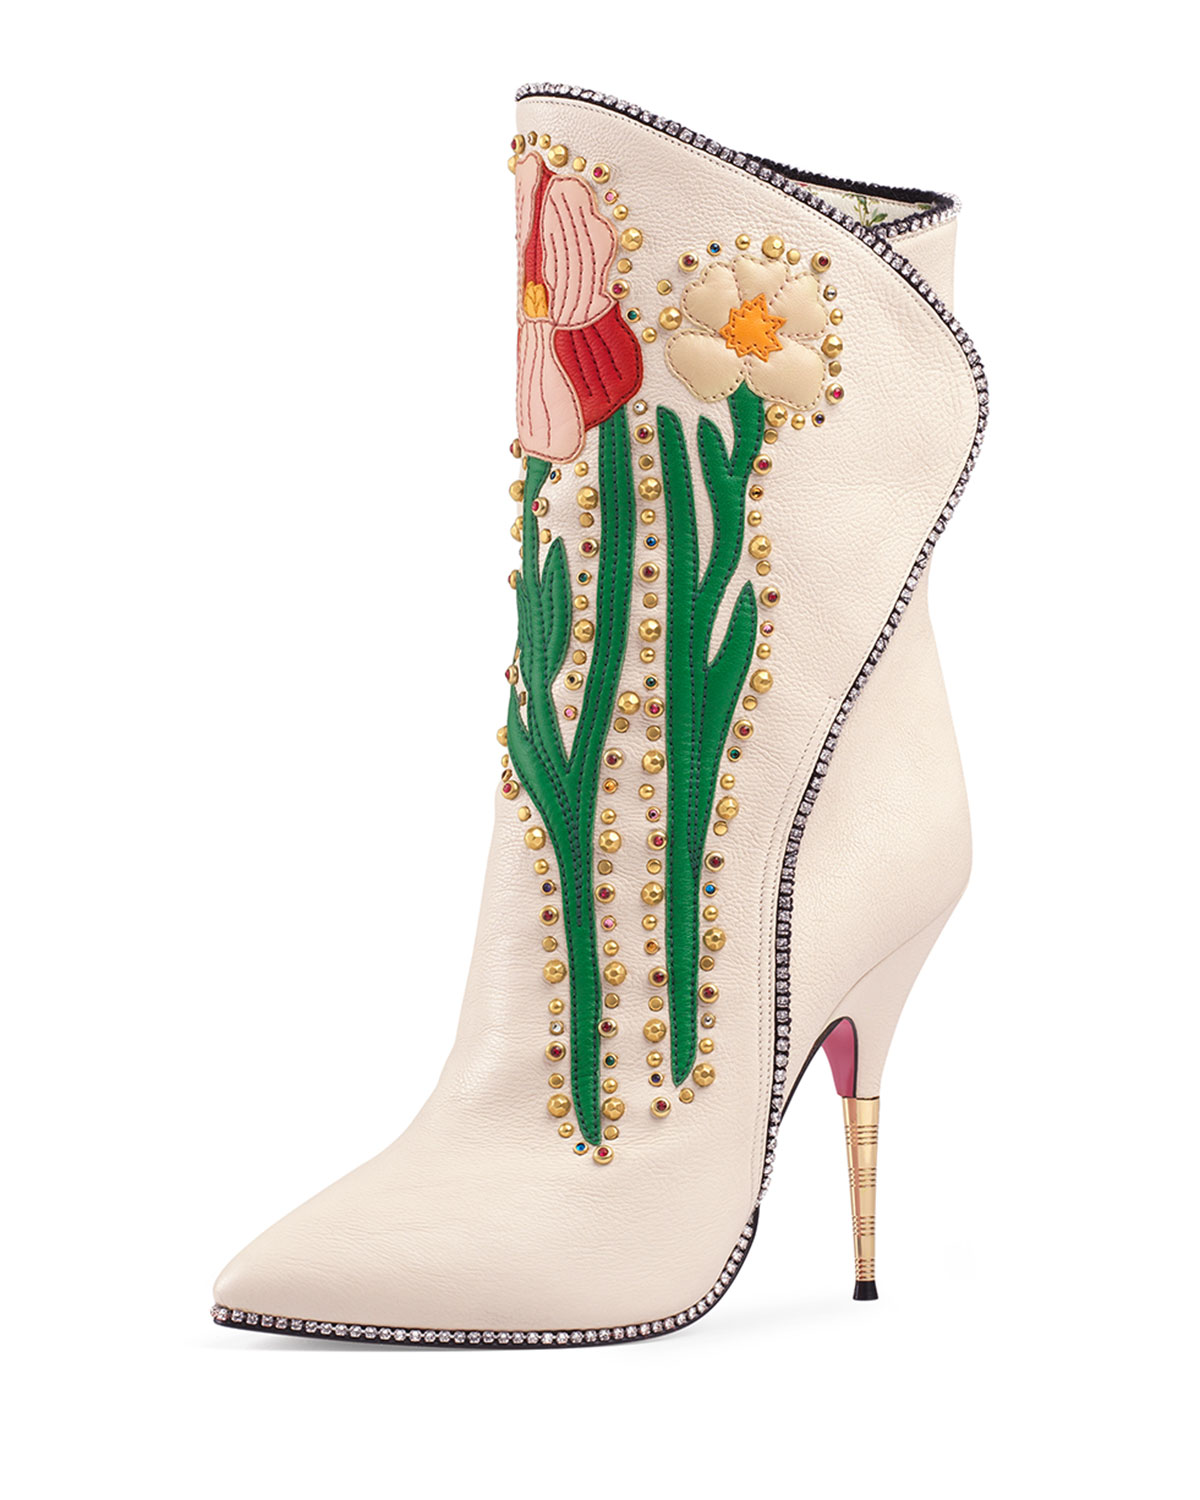 6f221e5139b Gucci Fosca Floral-Embroidered Leather Boot